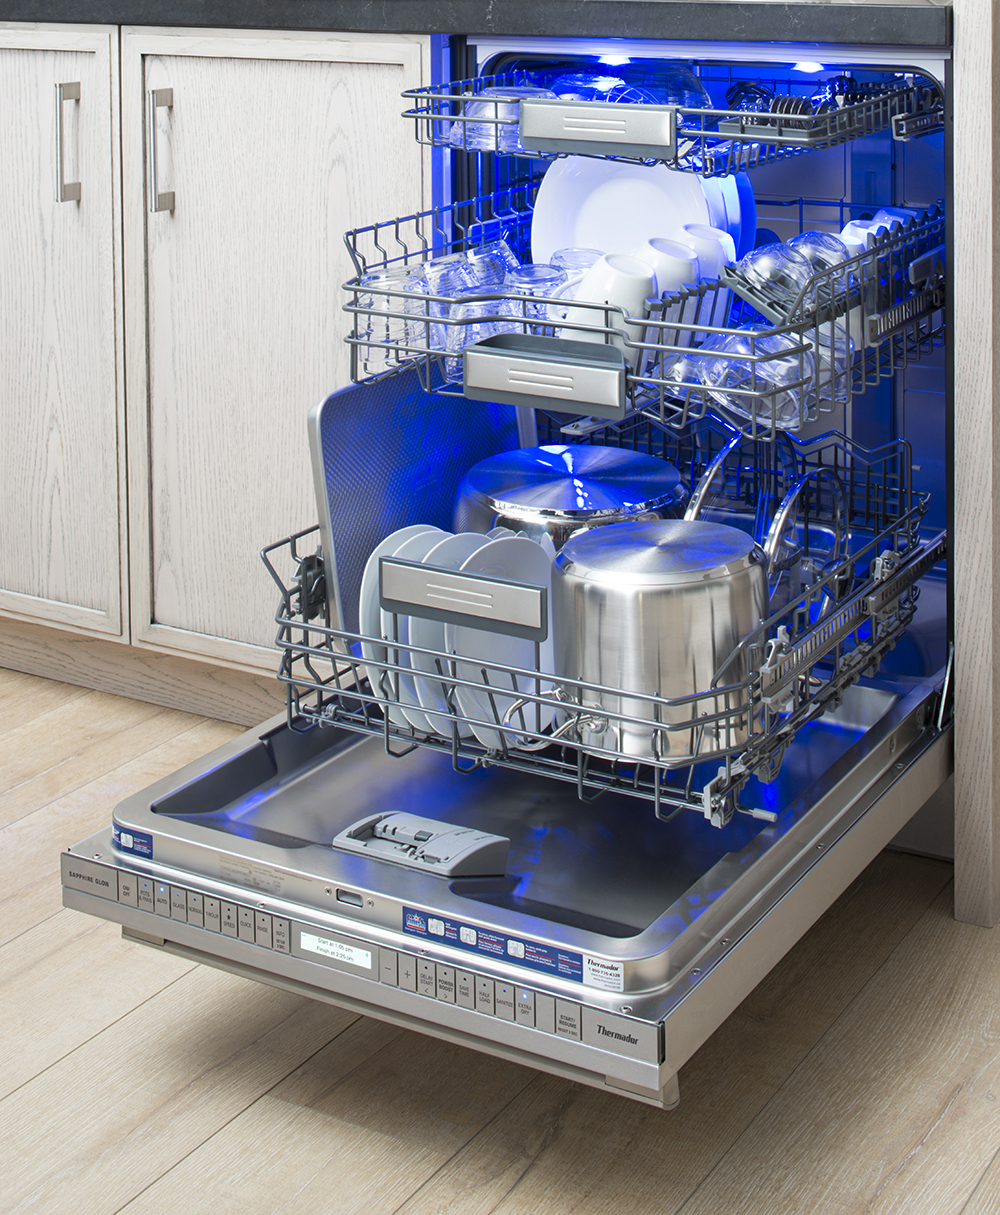 Thermador Star-Sapphire Dishwasher Mood Lighting.jpg